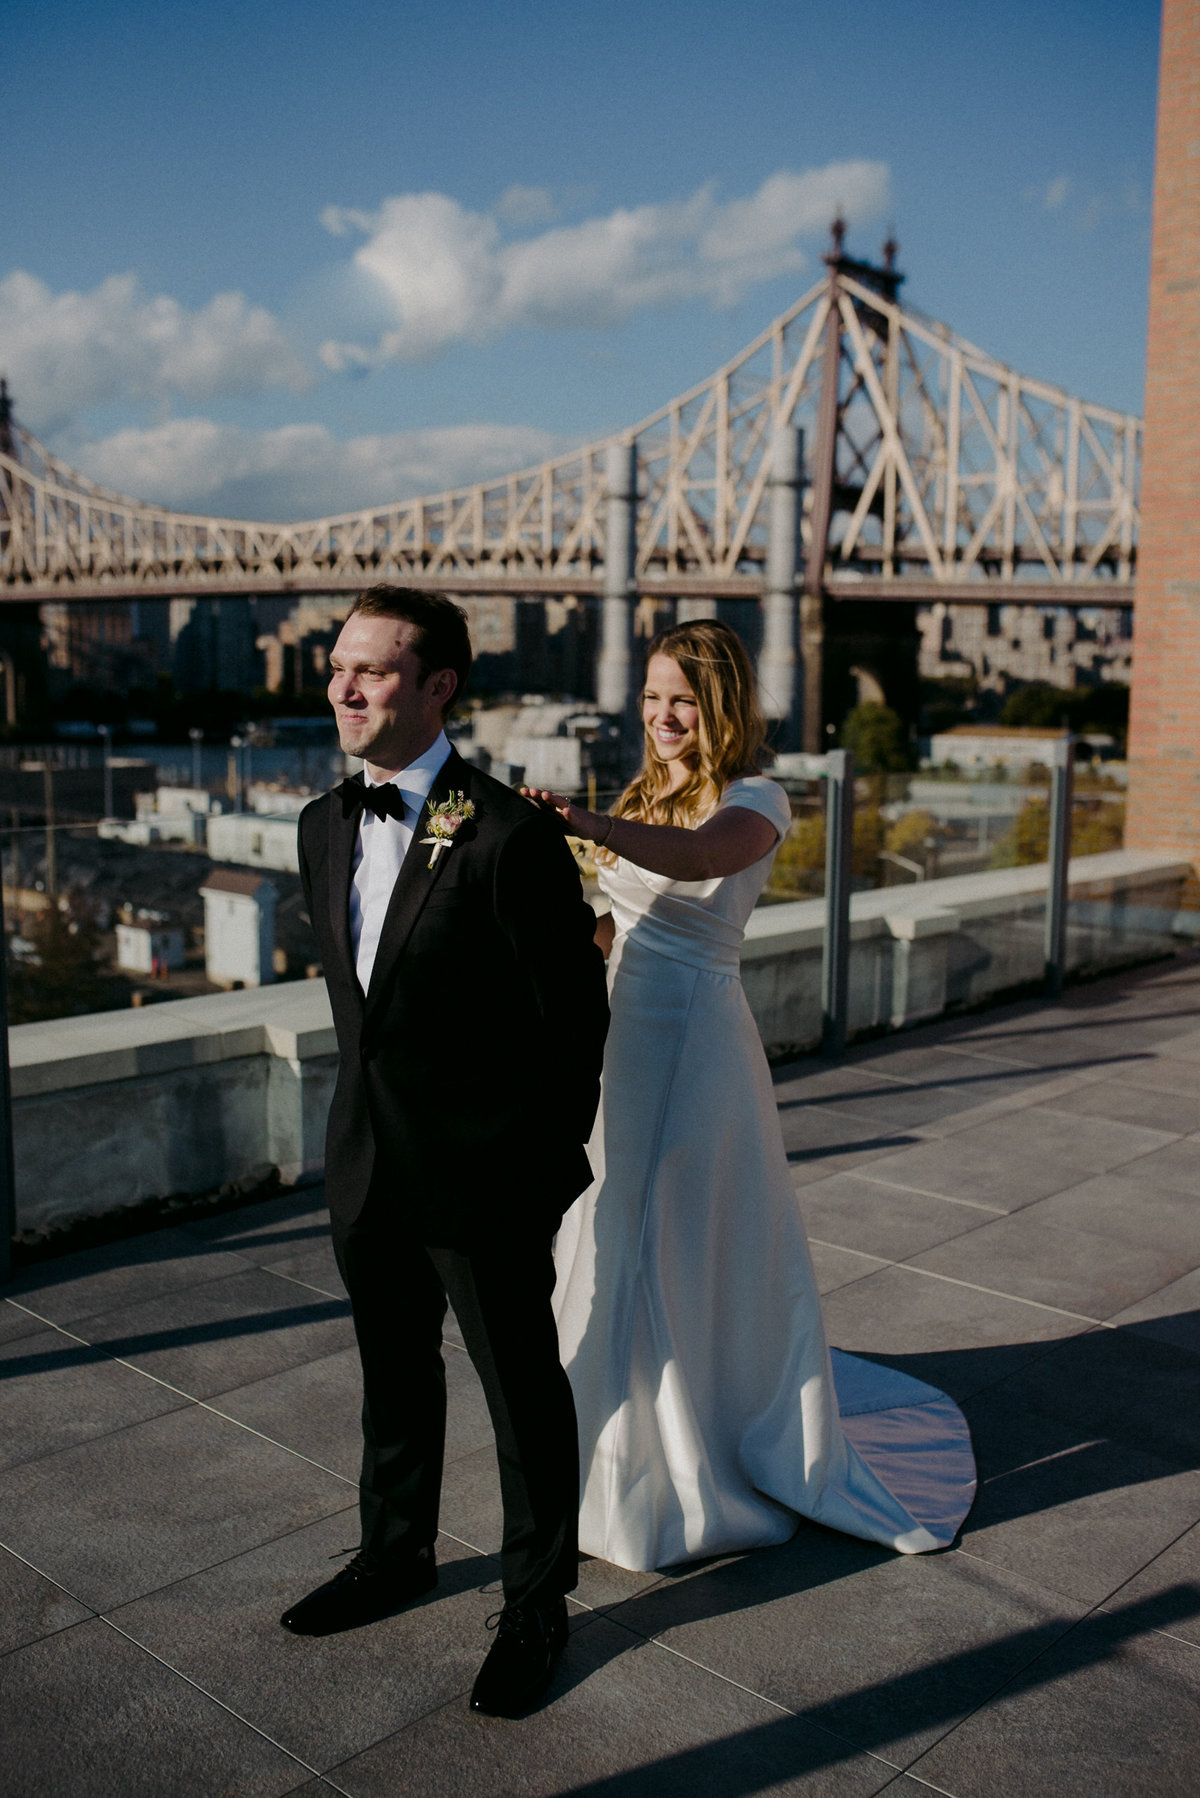 bordone-lic-brooklyn-queens-wedding-photographer-0004